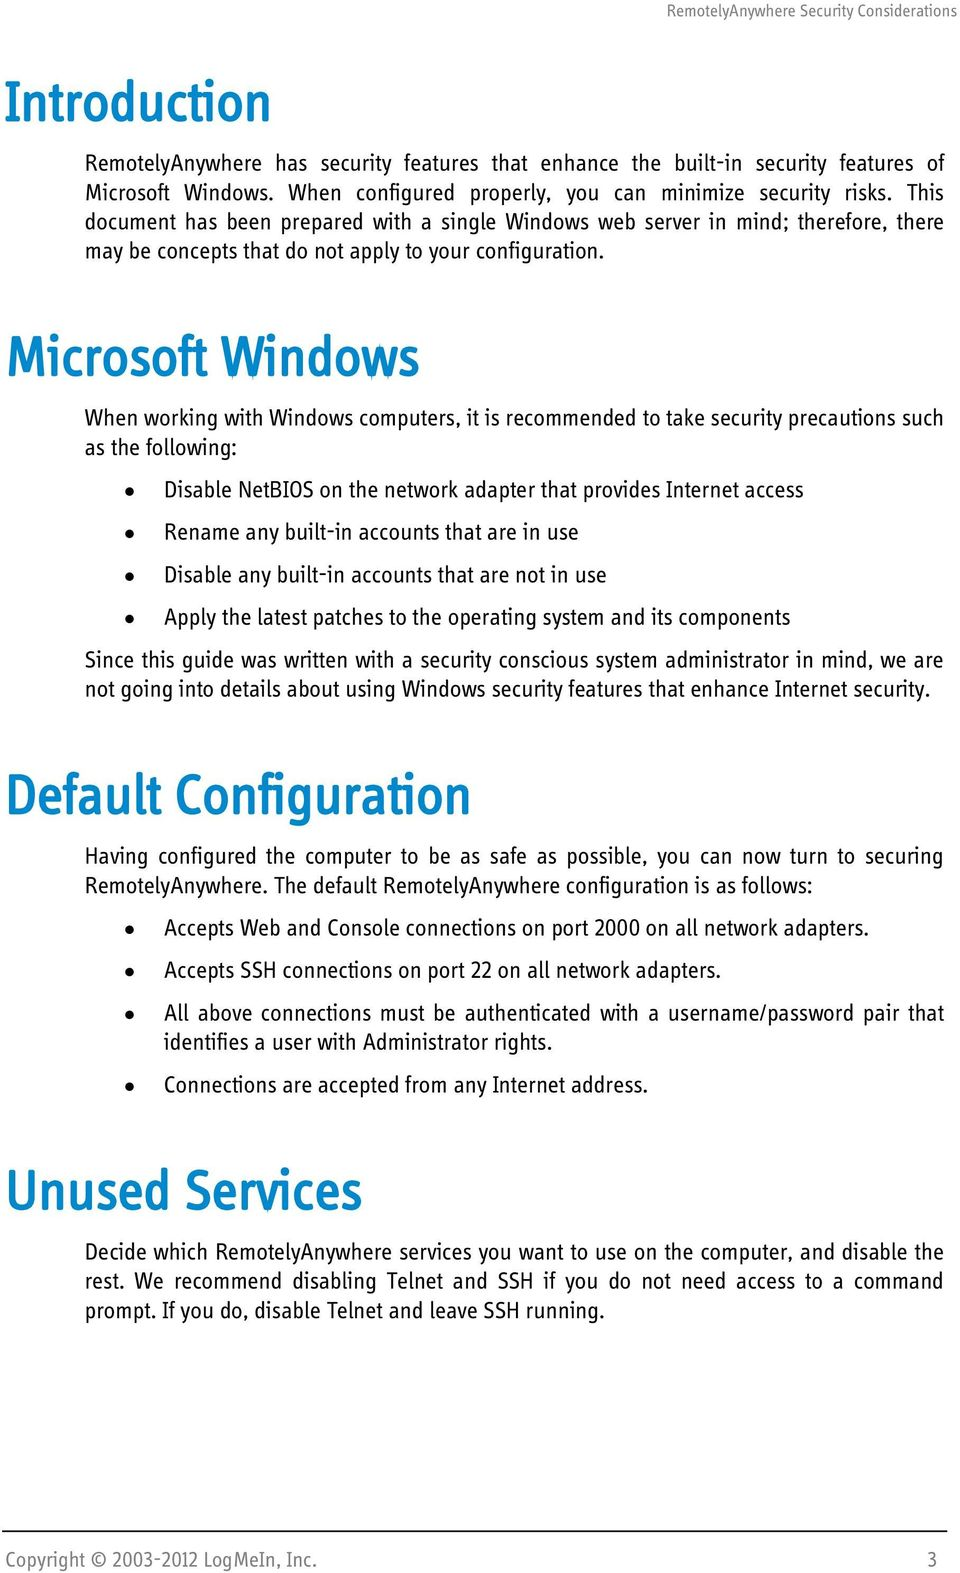 Microsoft Windows When working with Windows computers, it is recommended to take security precautions such as the following: Disable NetBIOS on the network adapter that provides Internet access